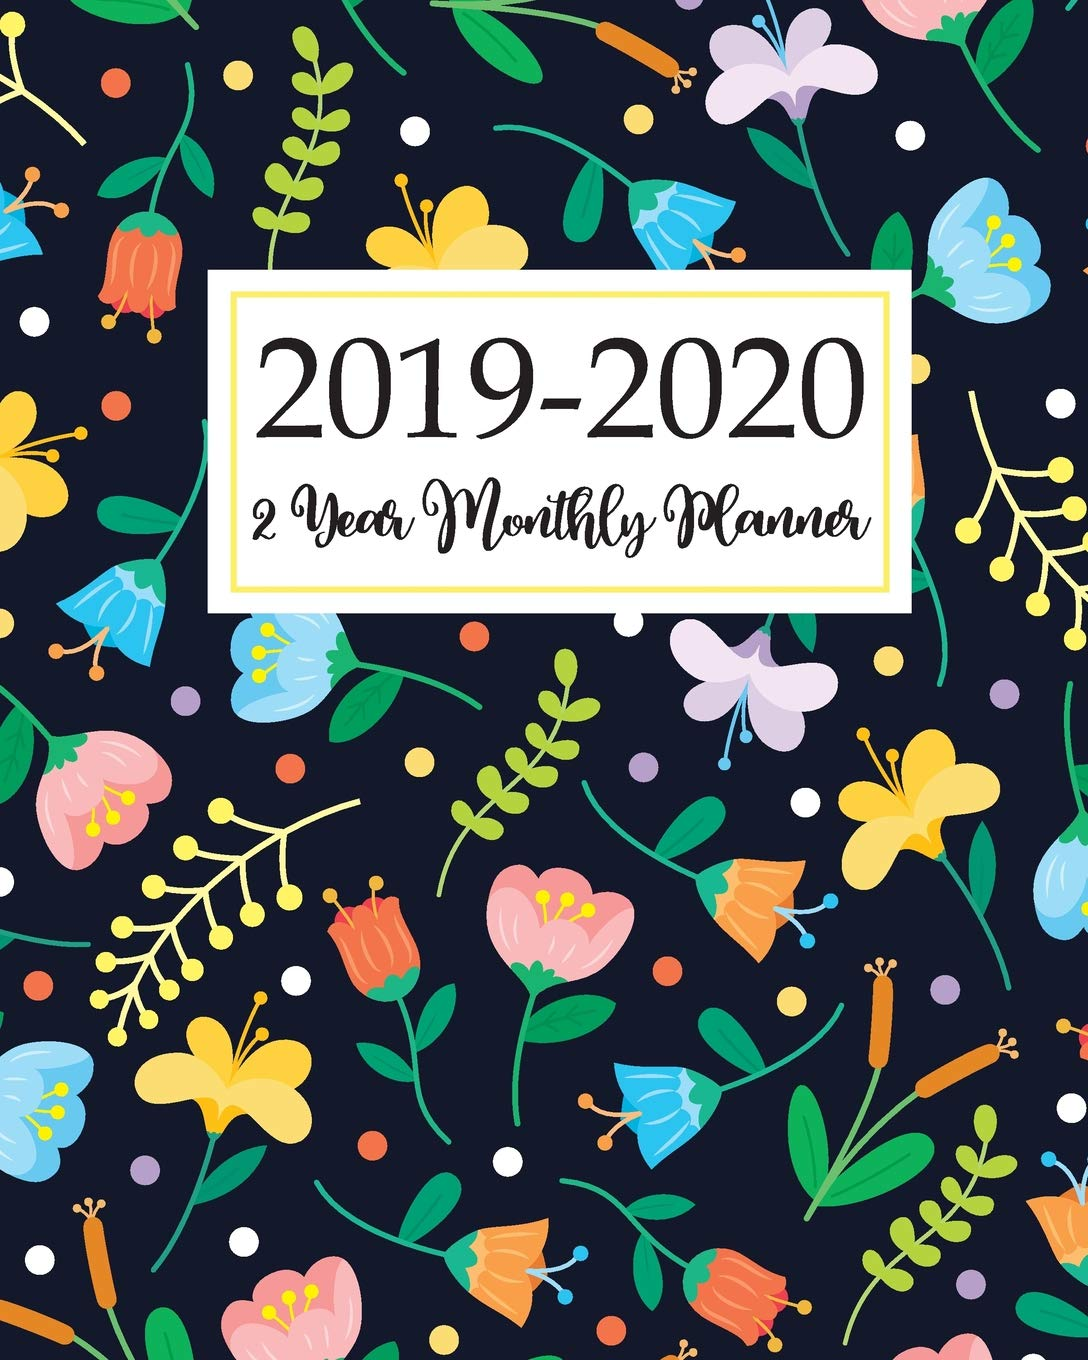 2019-2021 Three Year Planner: Cute Animal Dogs Cover Monthly Planner  Calendar Academic January 2019 to December 2021 Organizer Agenda for The  Next ... January 2019 to December 2021) (Volume 6): Kelly, Tina R.:  9781727282498: Amazon.com: Books